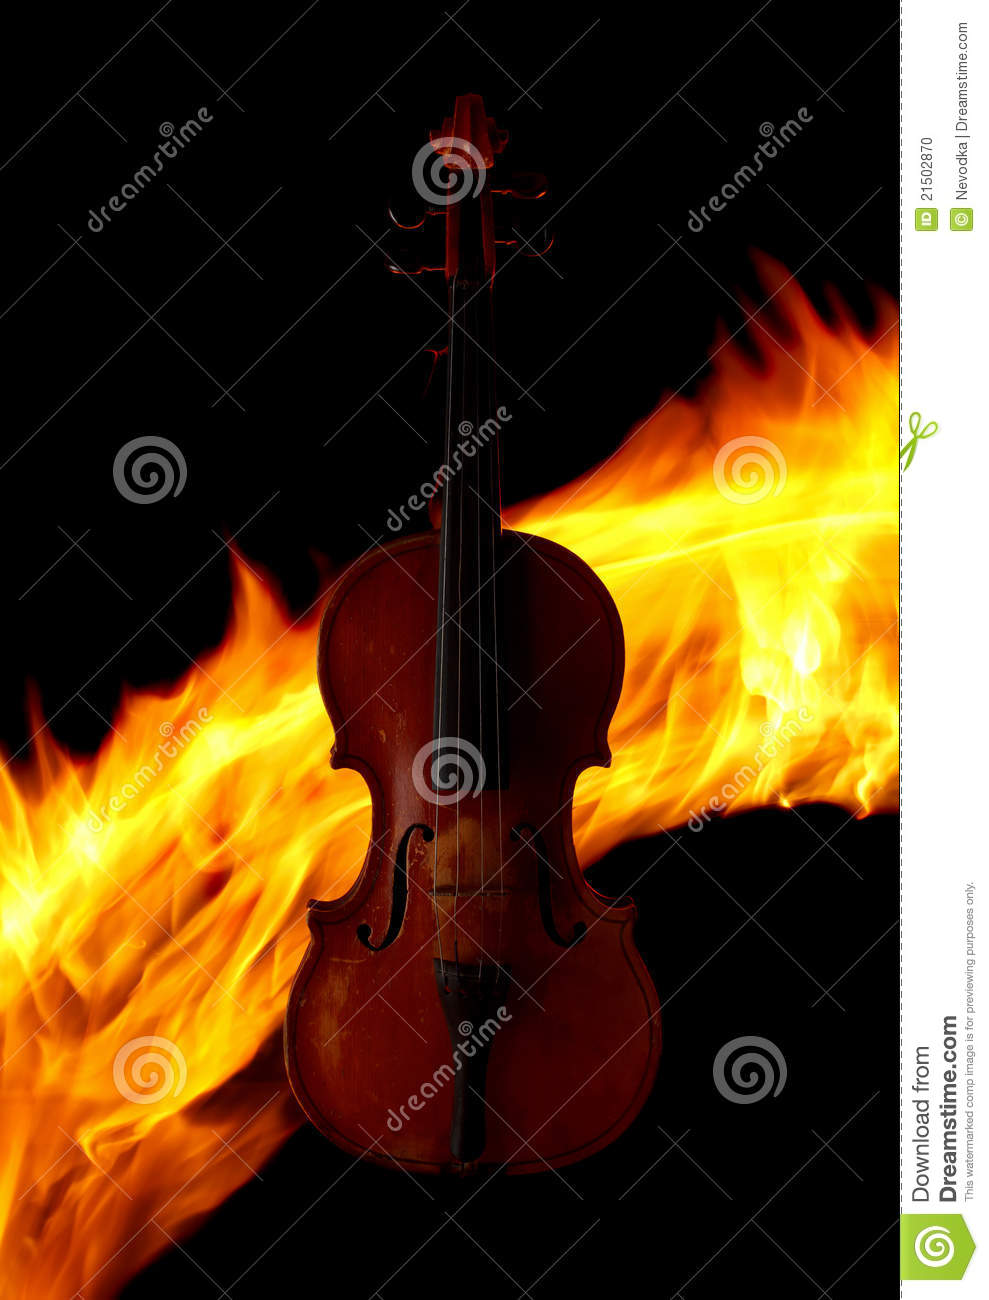 Violin over fire background